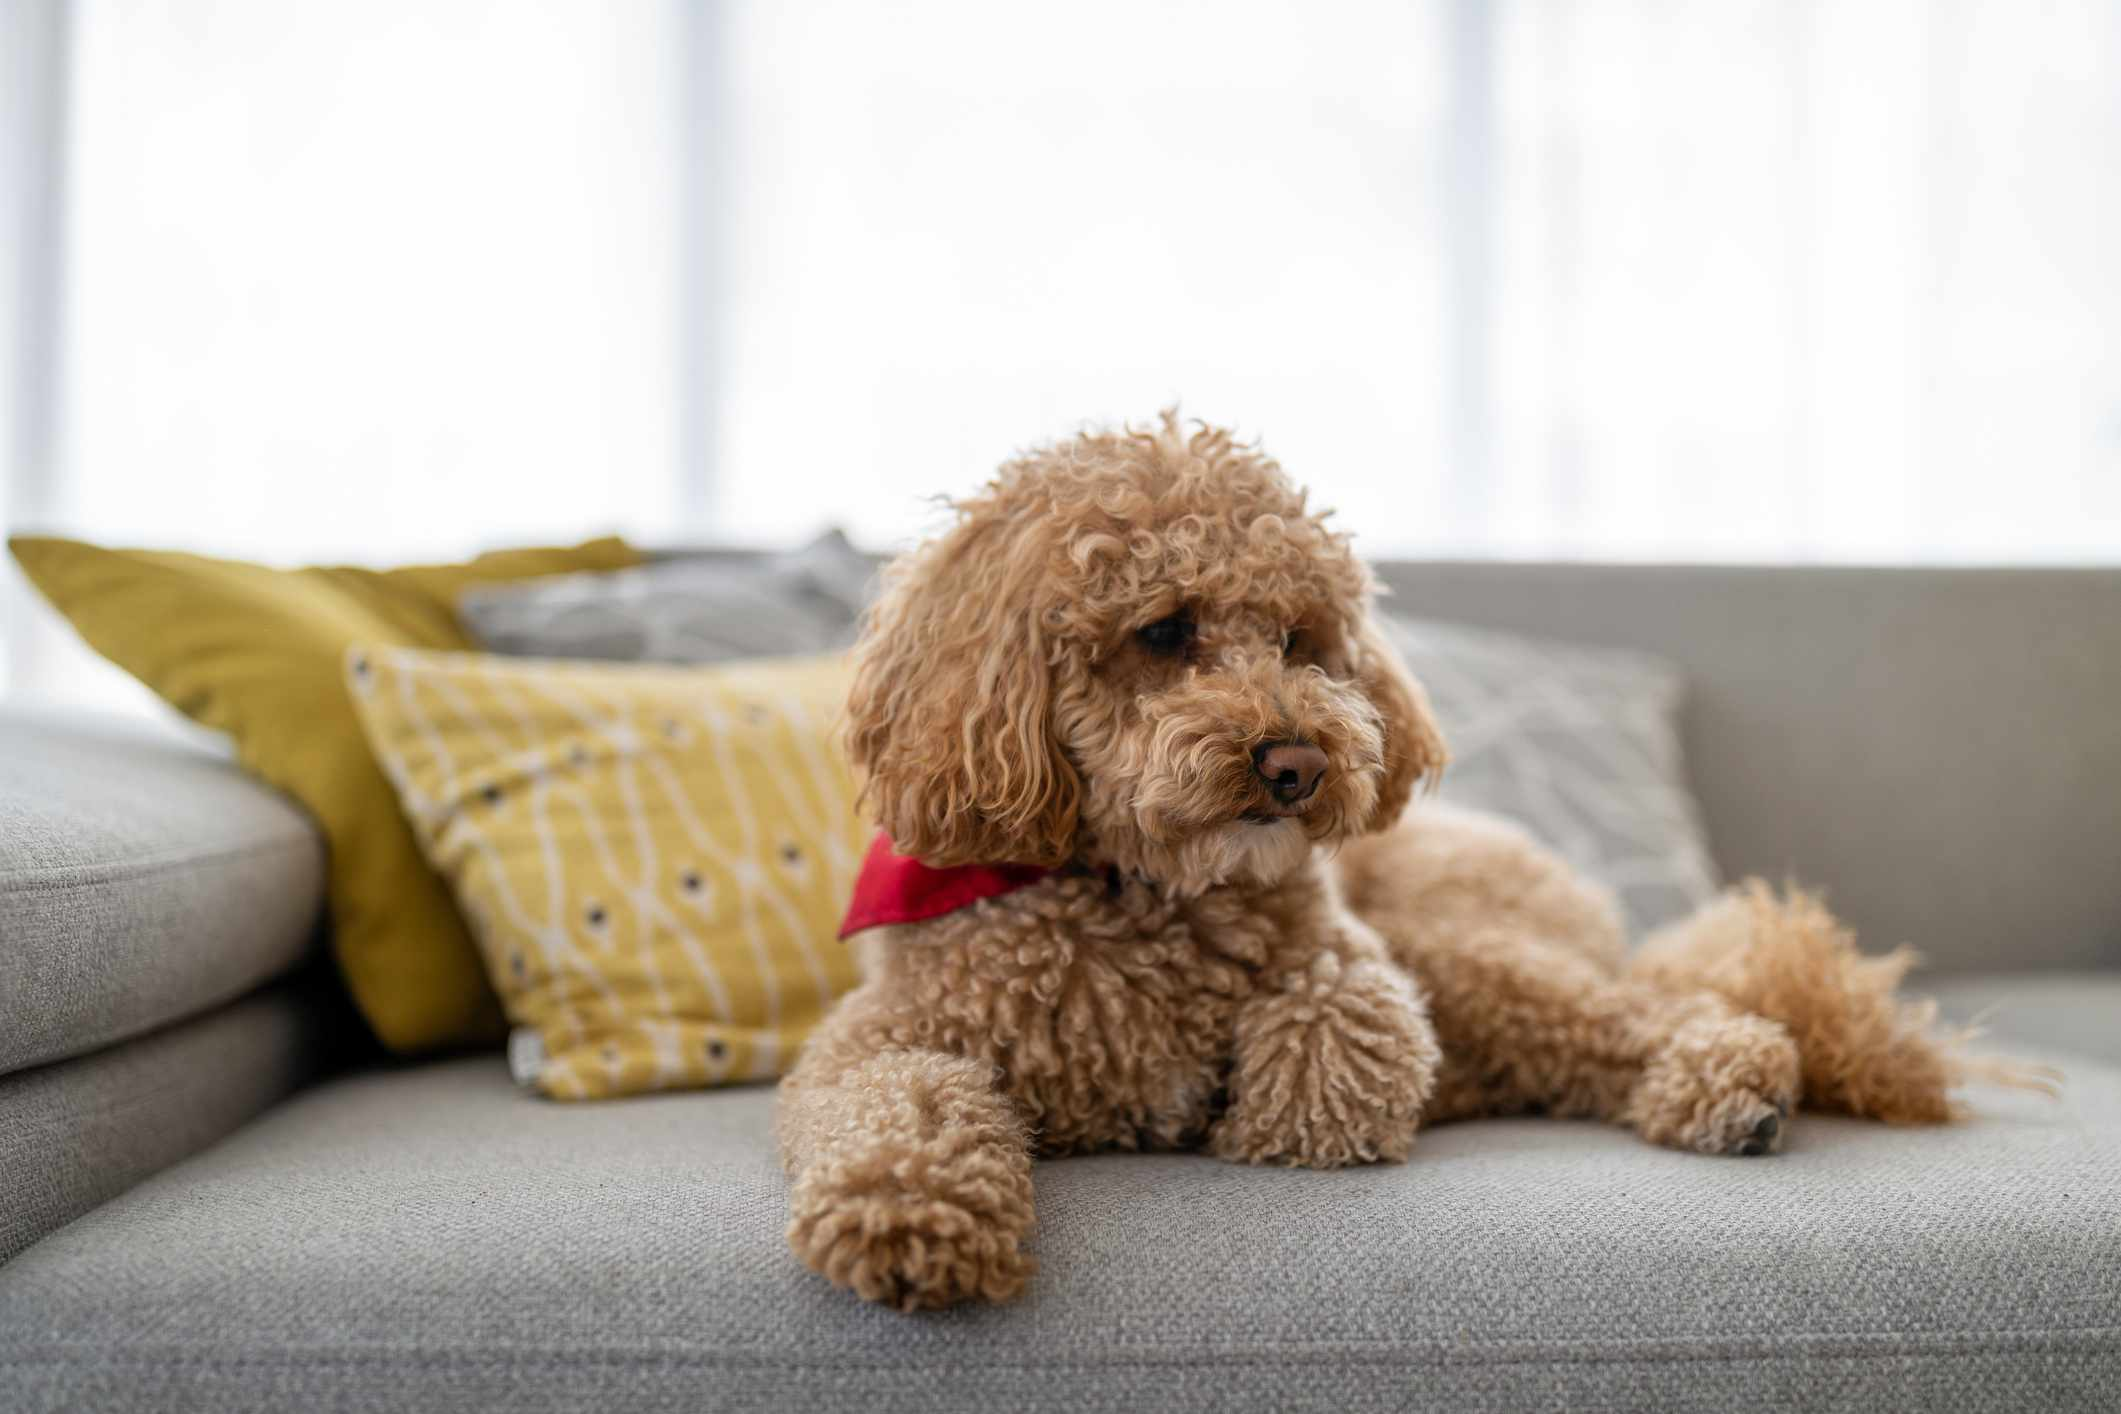 tan toy poodle with red bandana lying on gray couch in sunny room